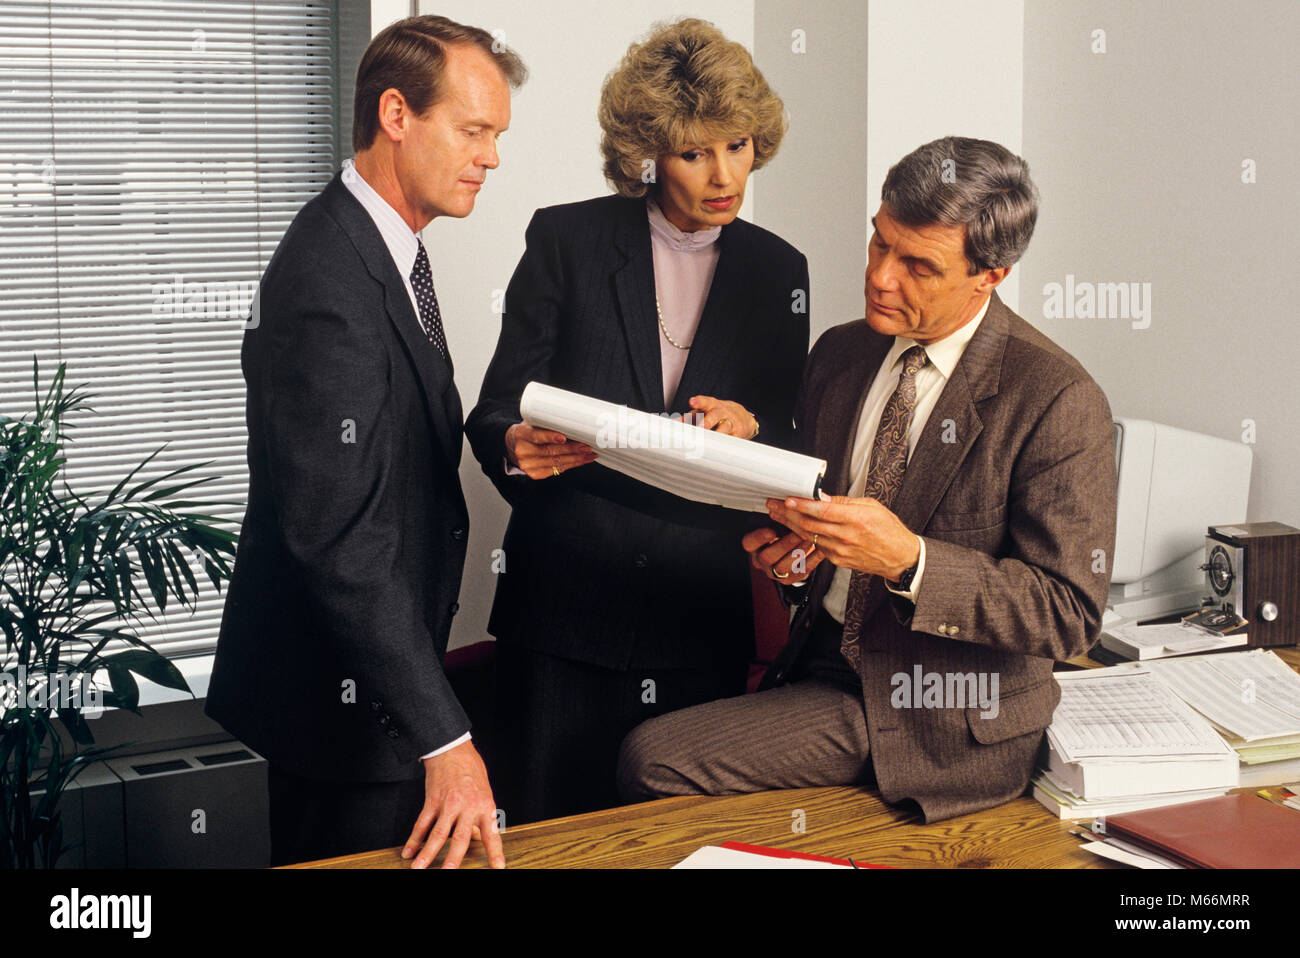 1980s 3 EXECUTIVES HOLDING MEETING IN OFFICE REVIEWING PAPER WORK SPREAD SHEET - ko2797 NET002 HARS LEADER INFORMATION - Stock Image